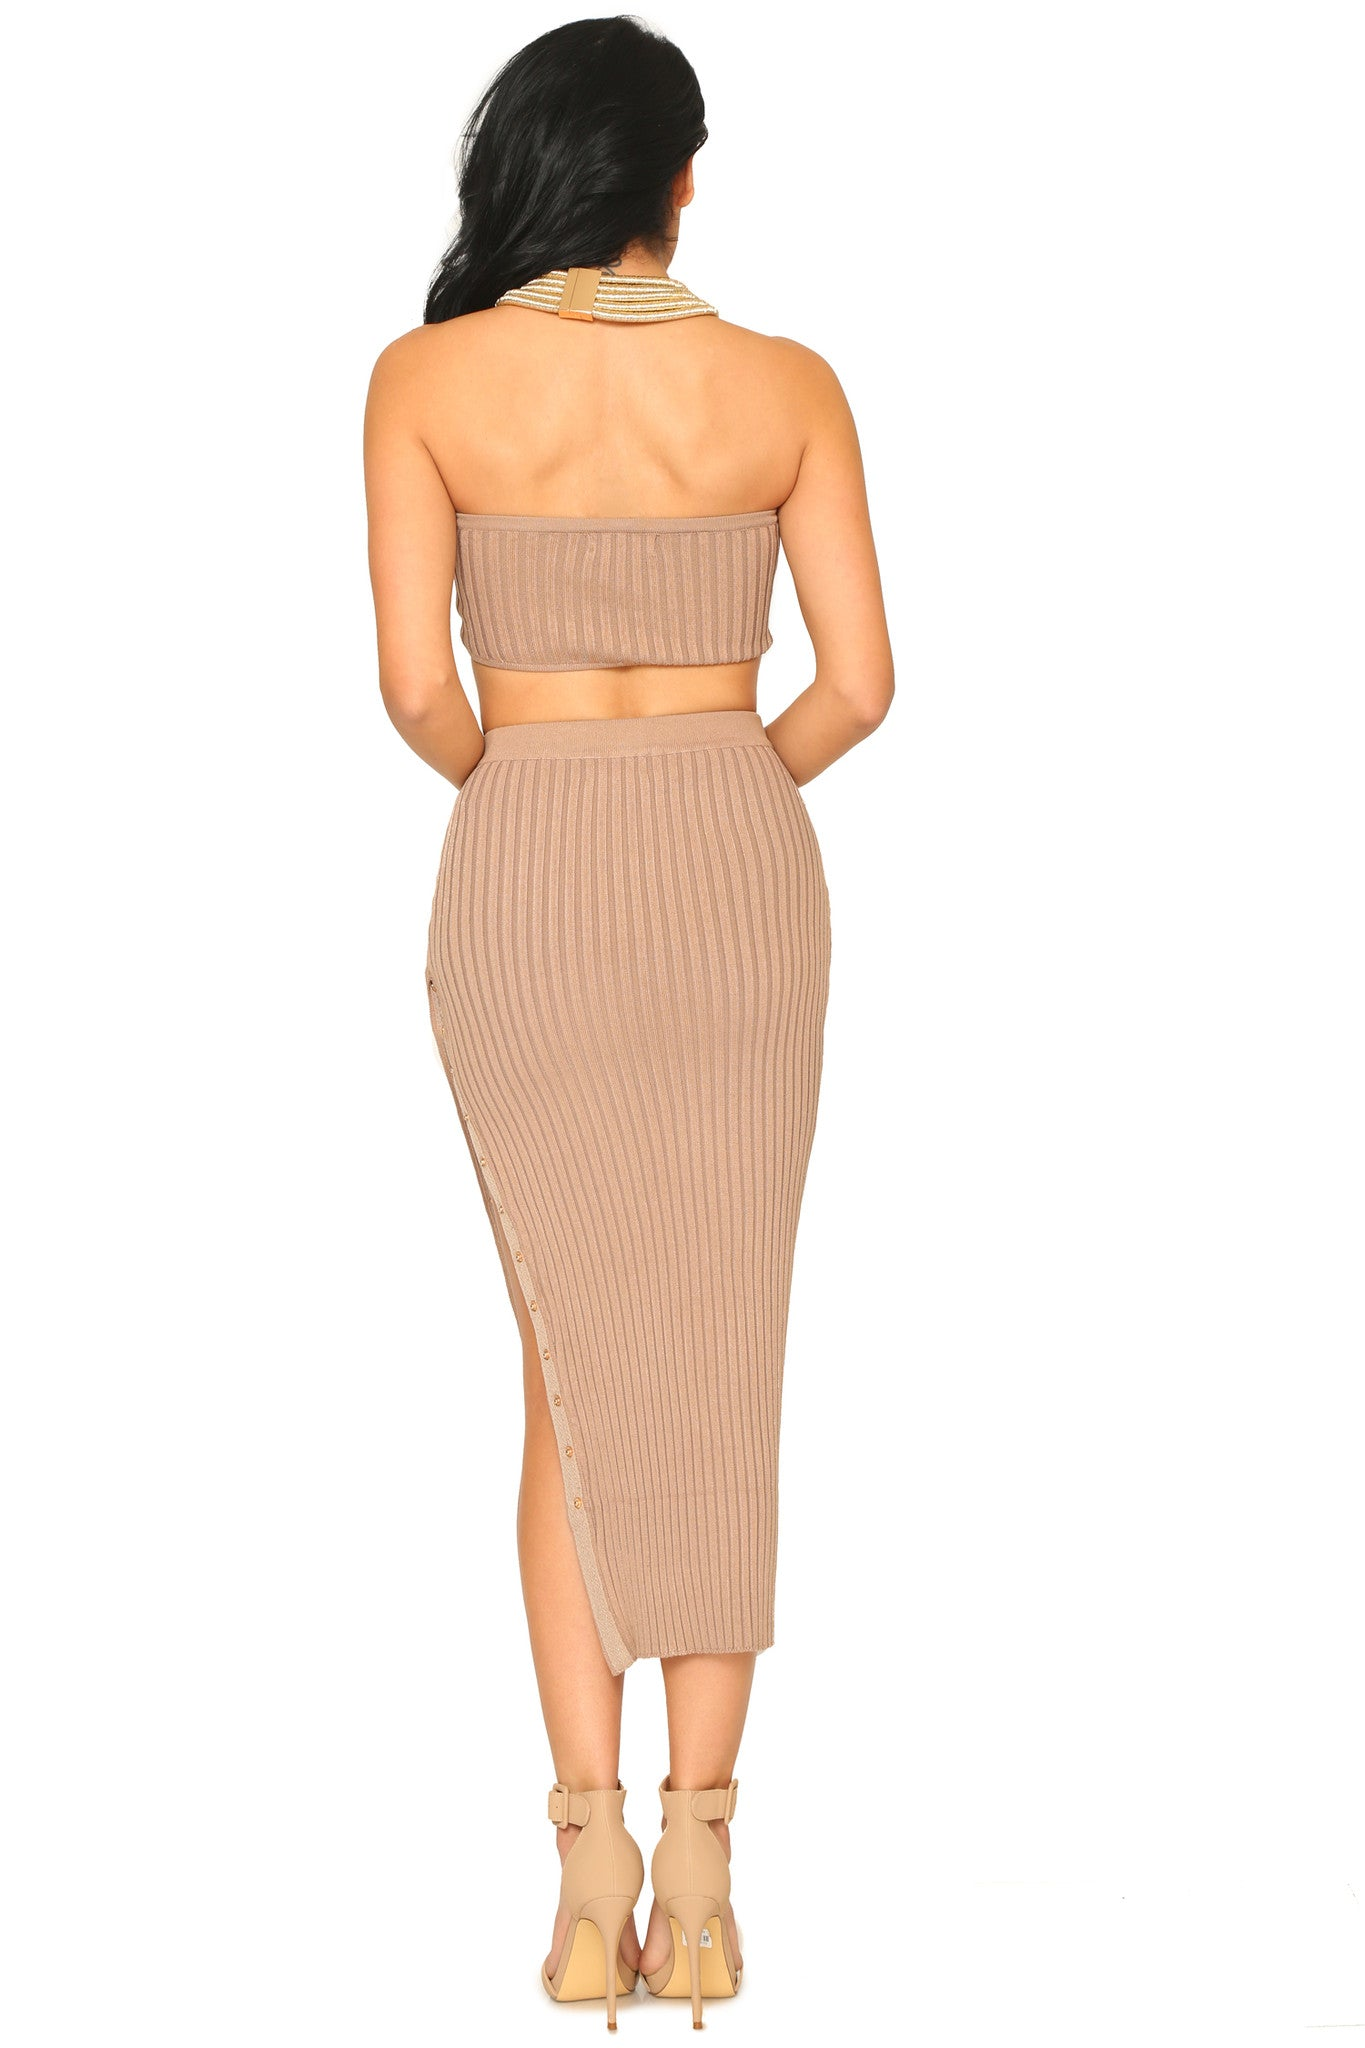 GISELLE CROP TOP AND SKIRT (SOLD SEPARATELY) - Glam Envy - 3